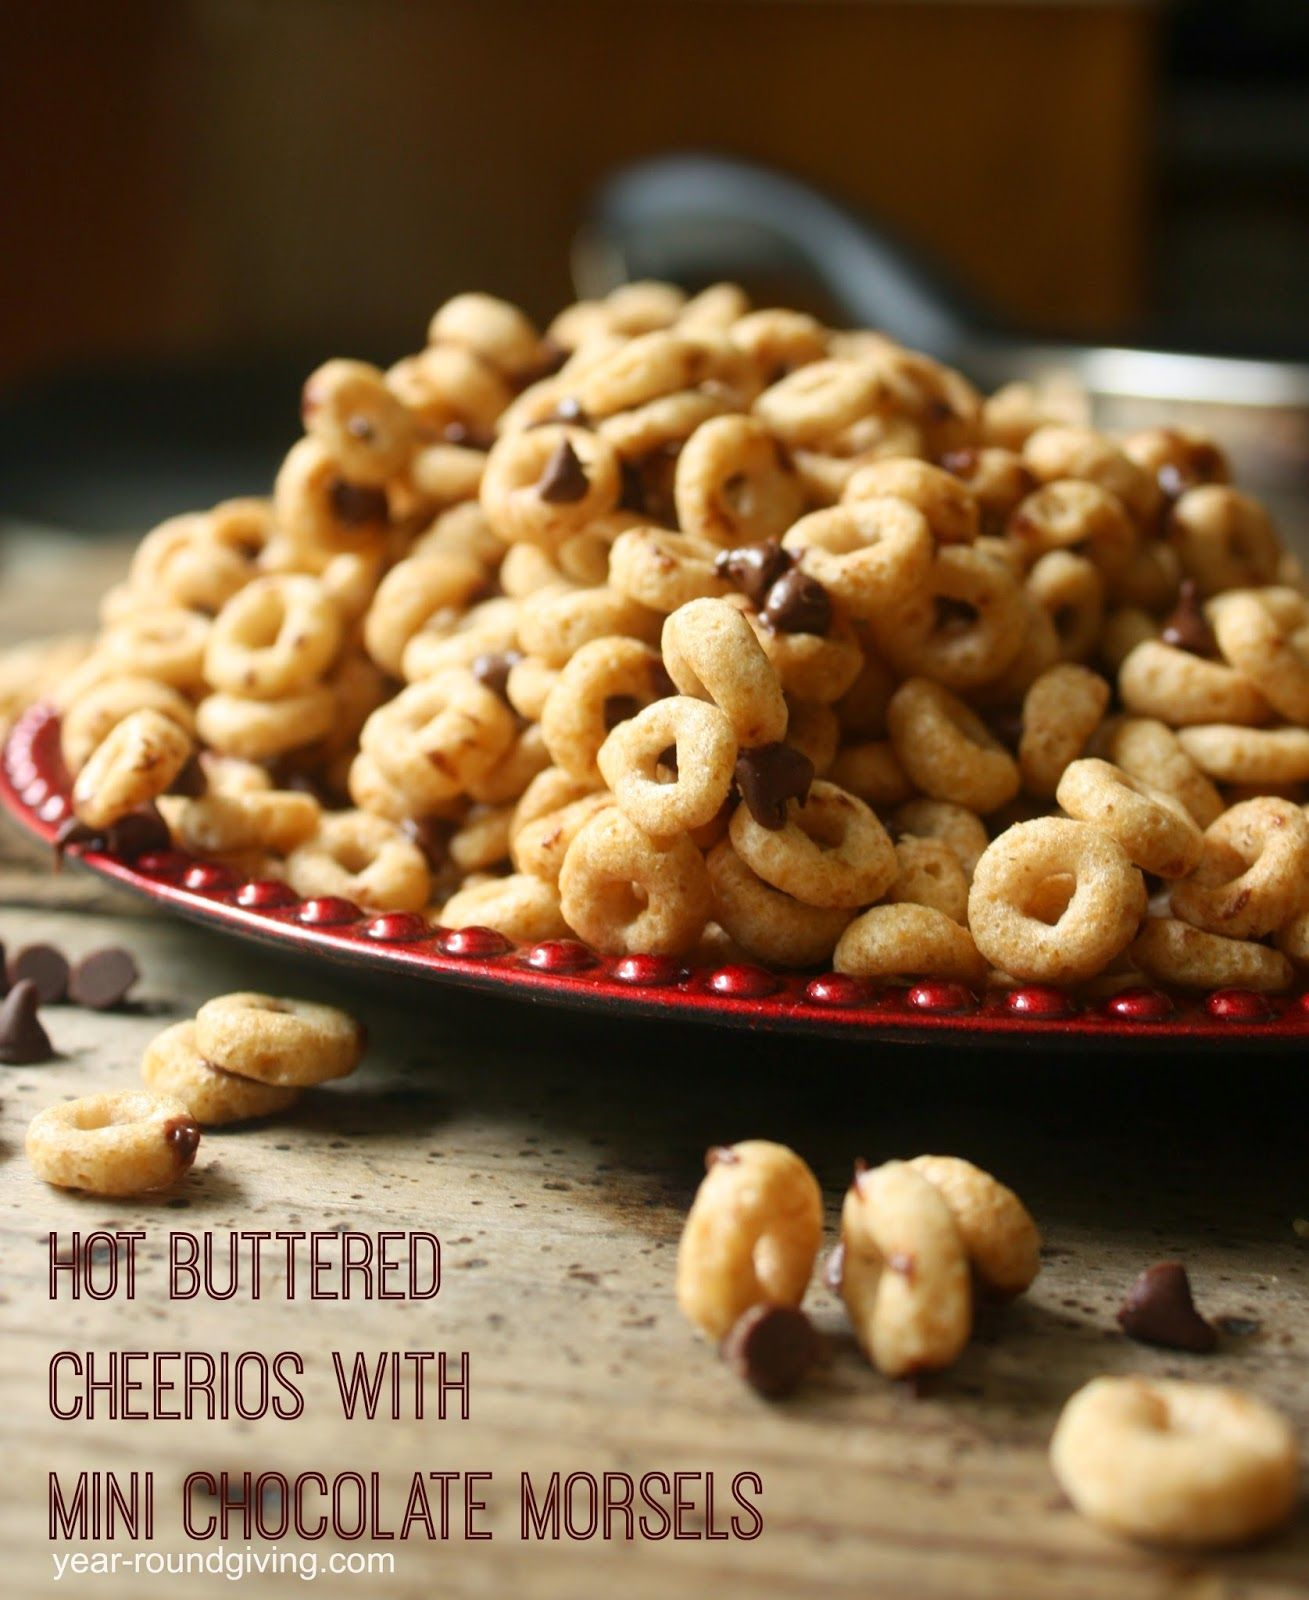 Hot Buttered Cheerios With Mini Chocolate Morsels On The Go Pink Cheerio